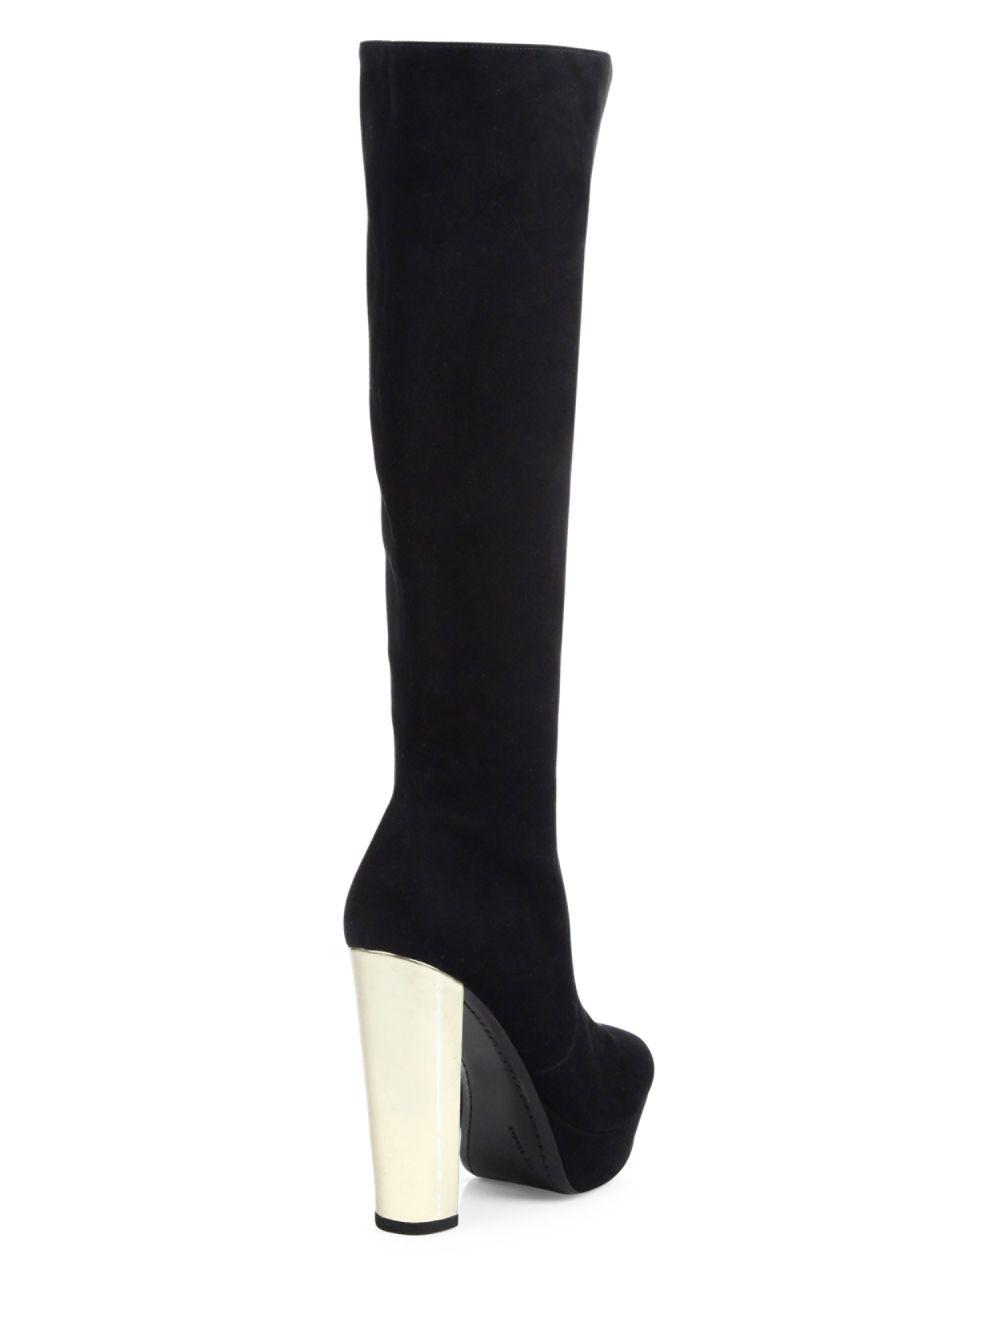 dc99848f651 Lyst - Alice + Olivia Hayes Tall Suede Platform Boots in Black - Save 30%